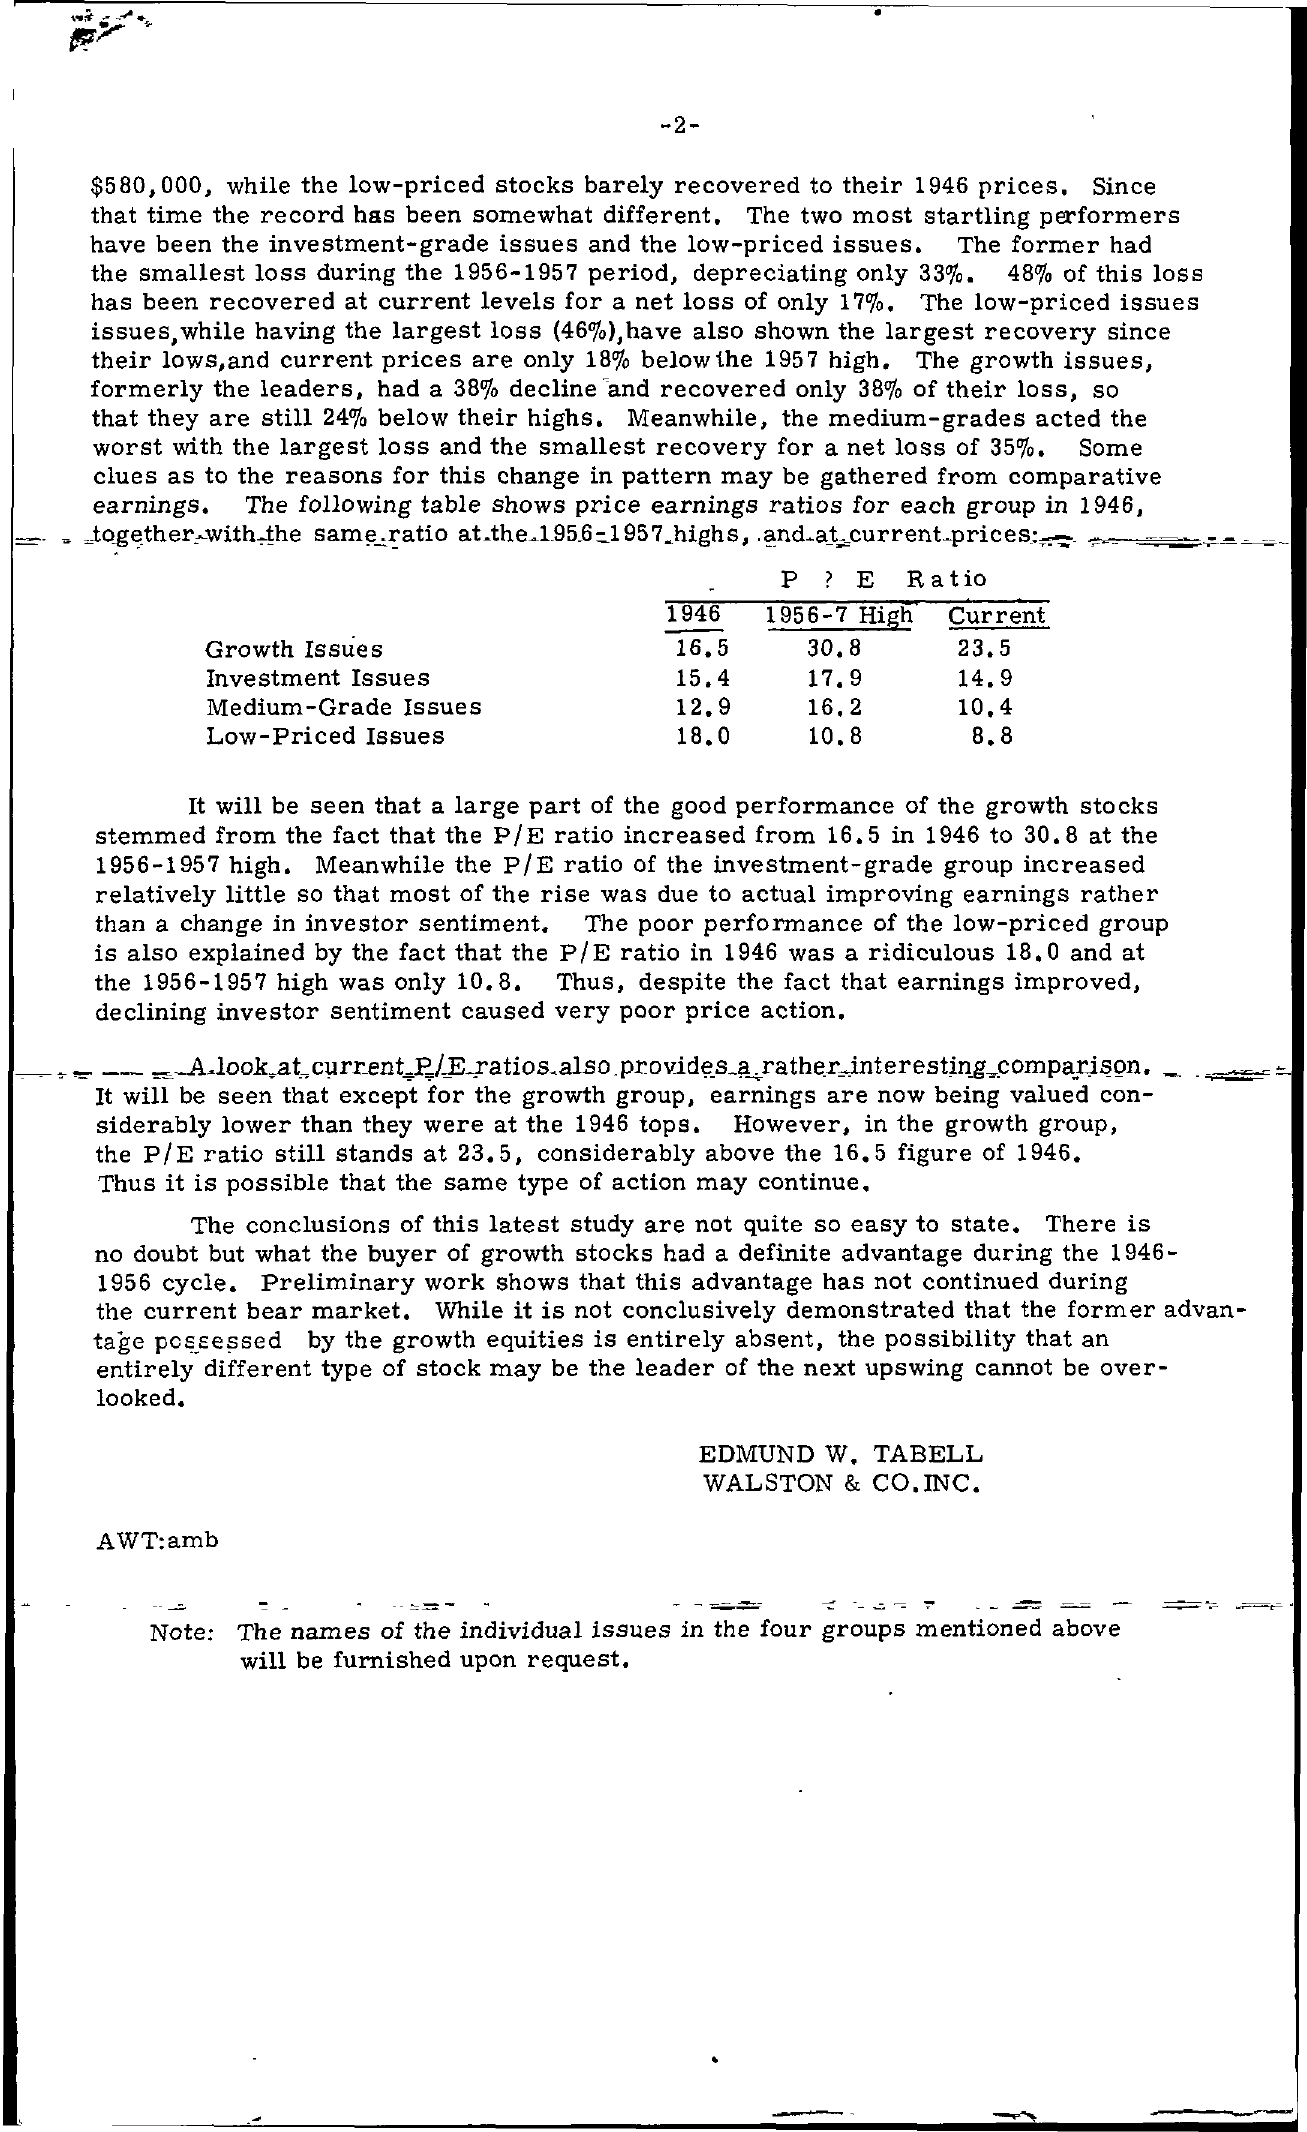 Tabell's Market Letter - June 20, 1958 page 2